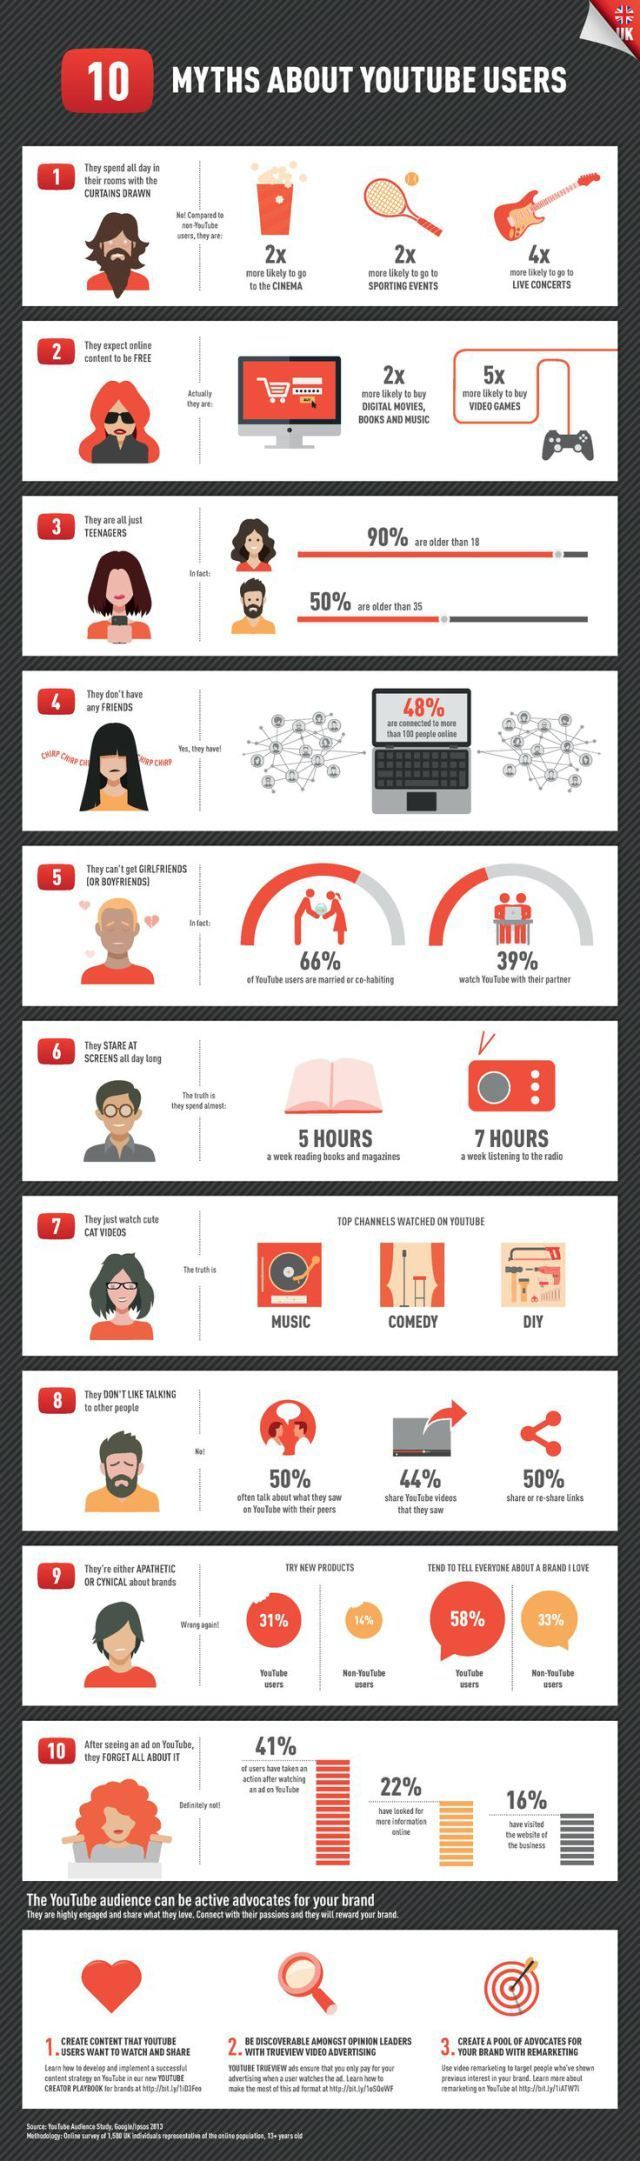 10 myths about #youtube users - #infographic #demographic